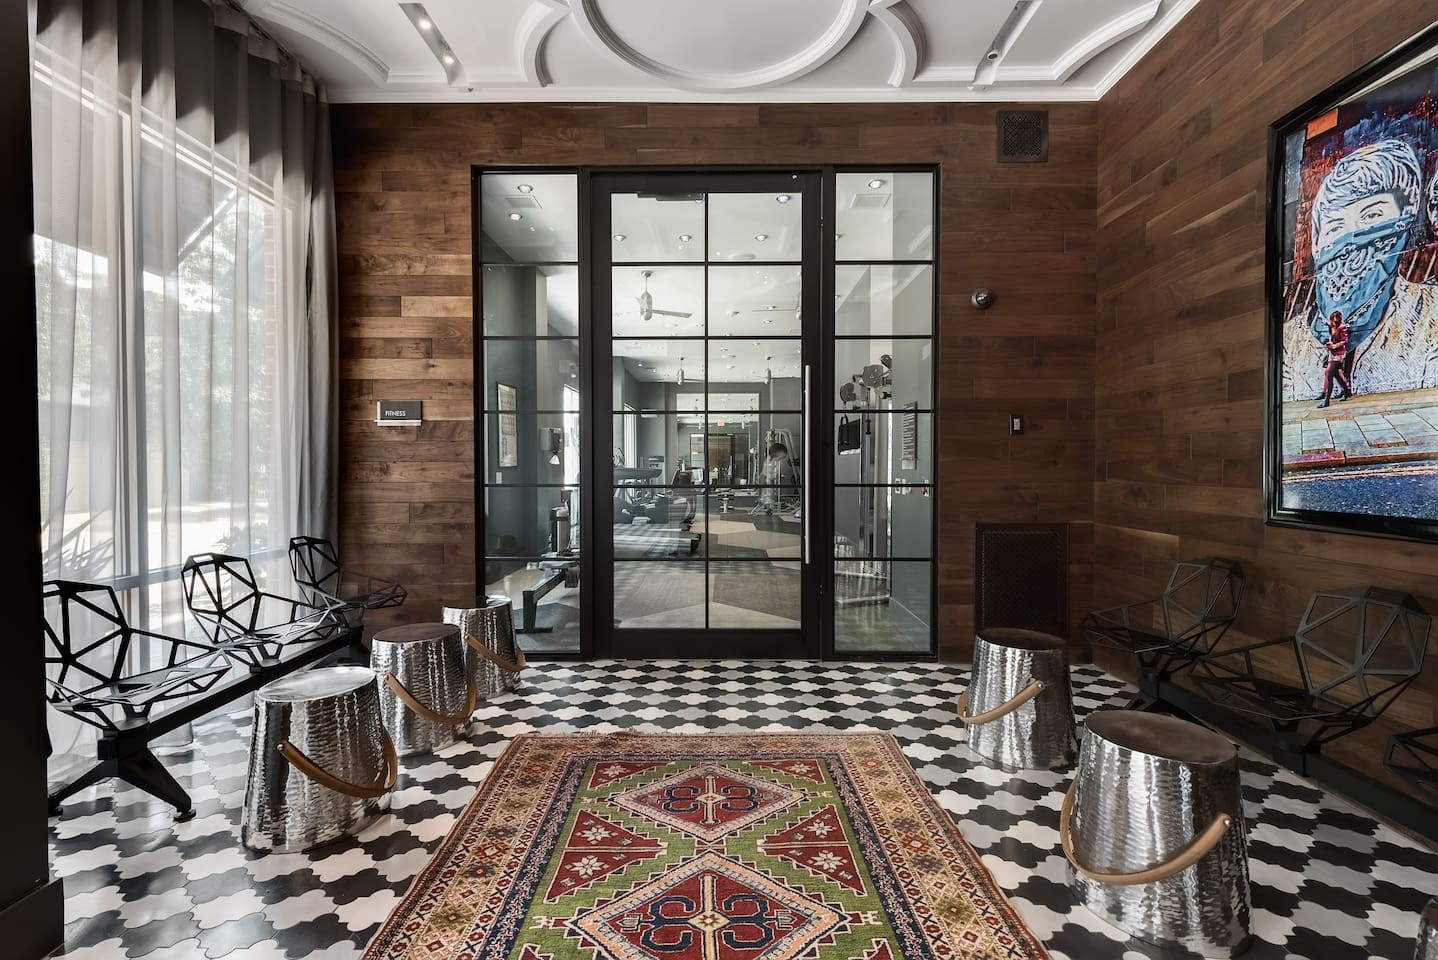 One of Two Guest lobby entrances designed by award winning Interior Group